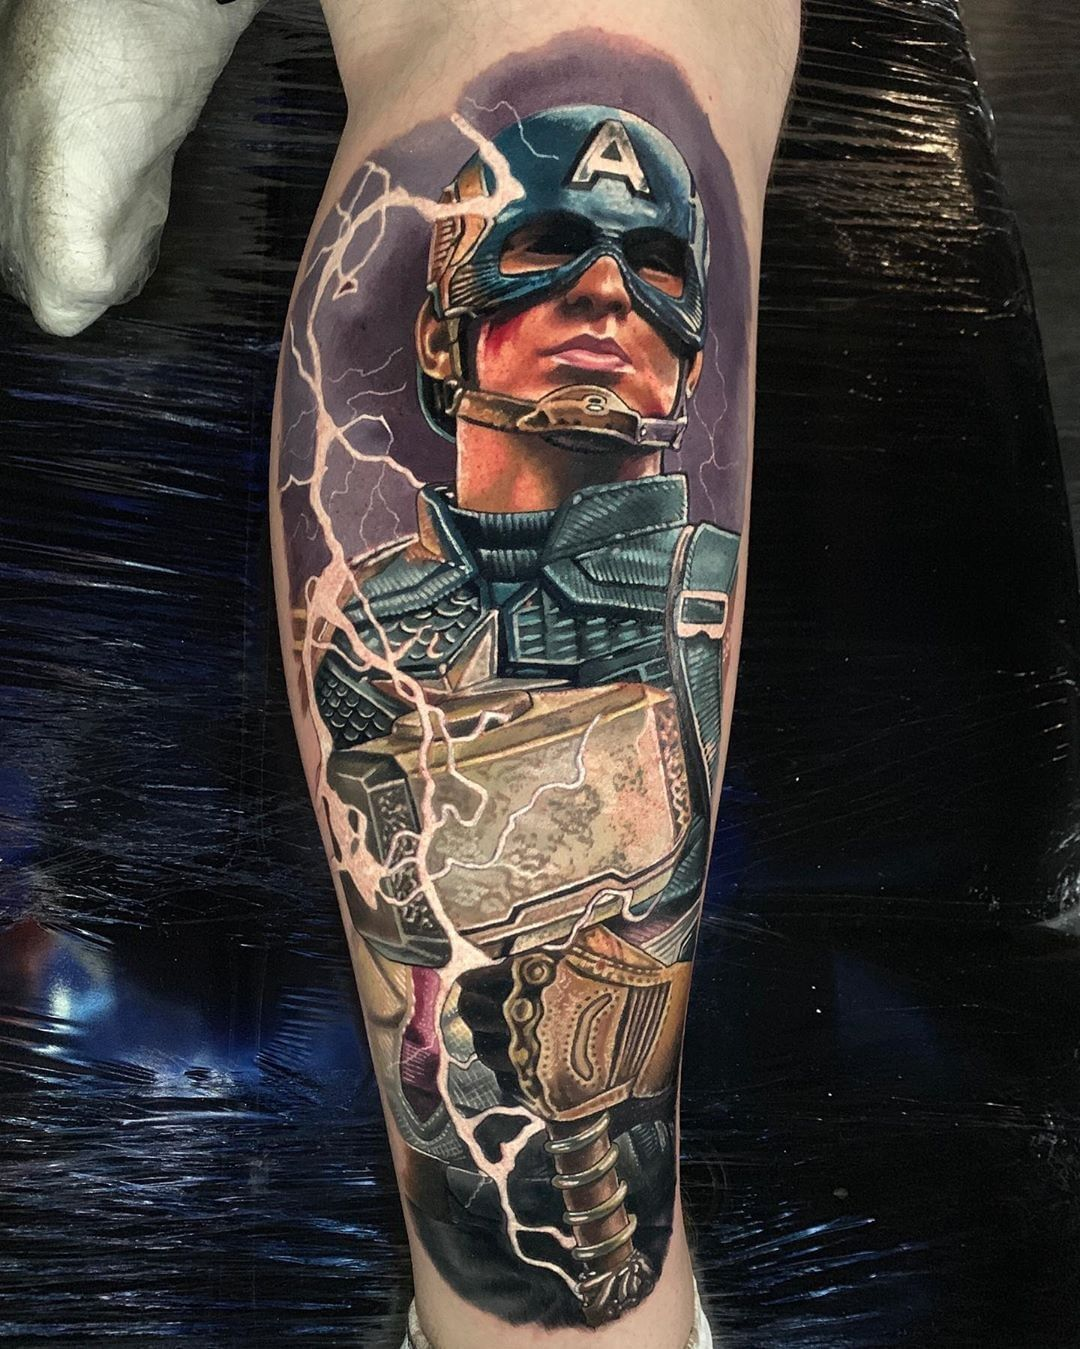 Captain America with Thor's hammer tattoo